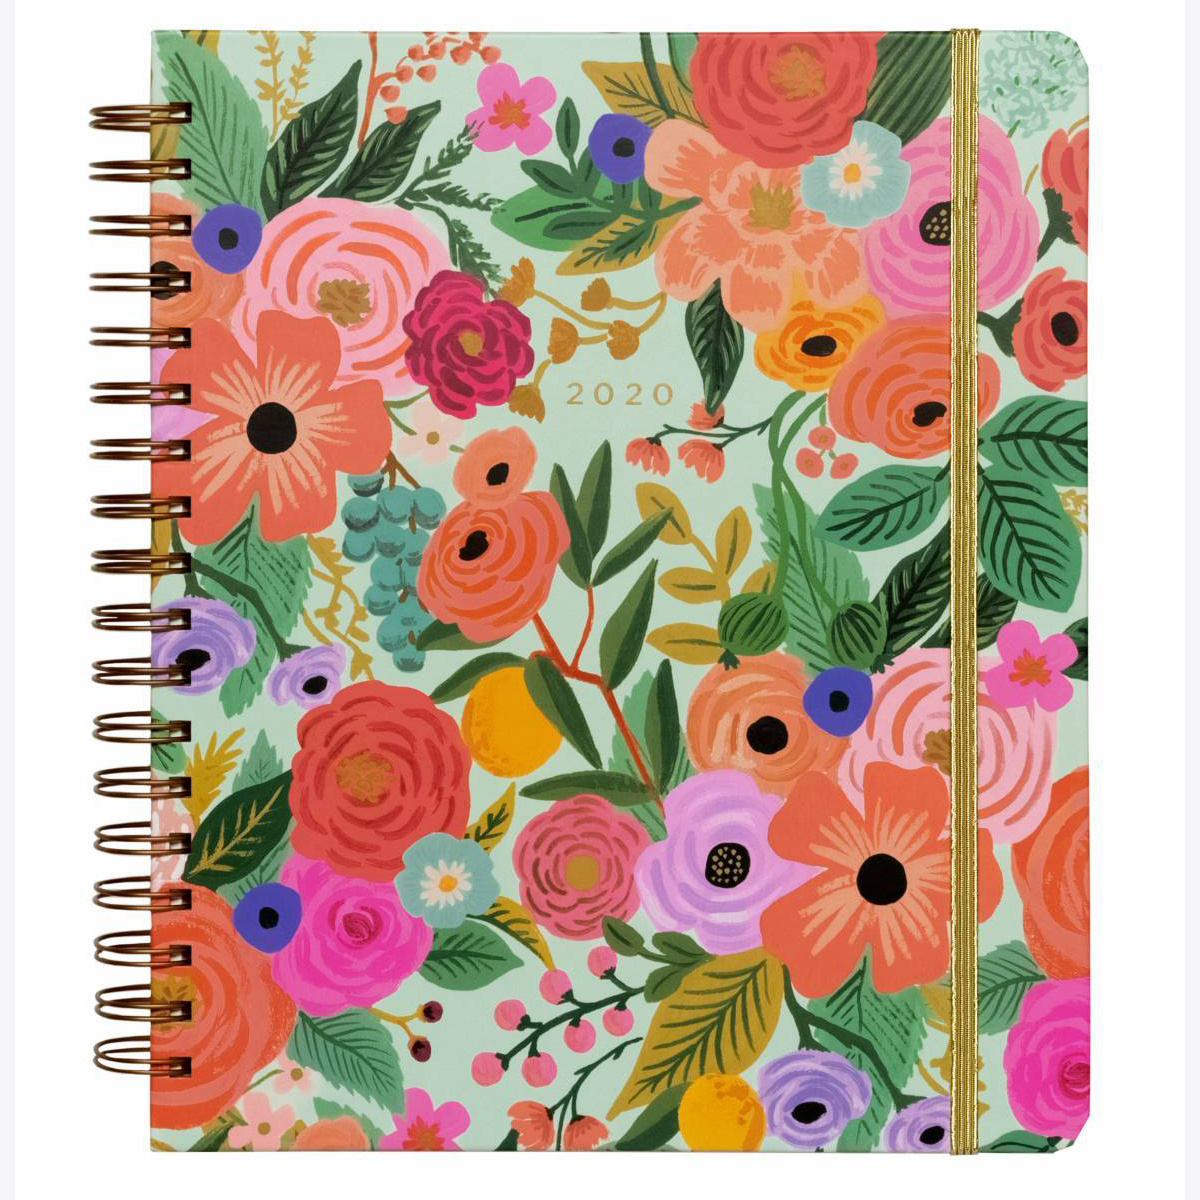 Rifle Paper Co. 2020 Garden Party Spiral 17 Month Agenda